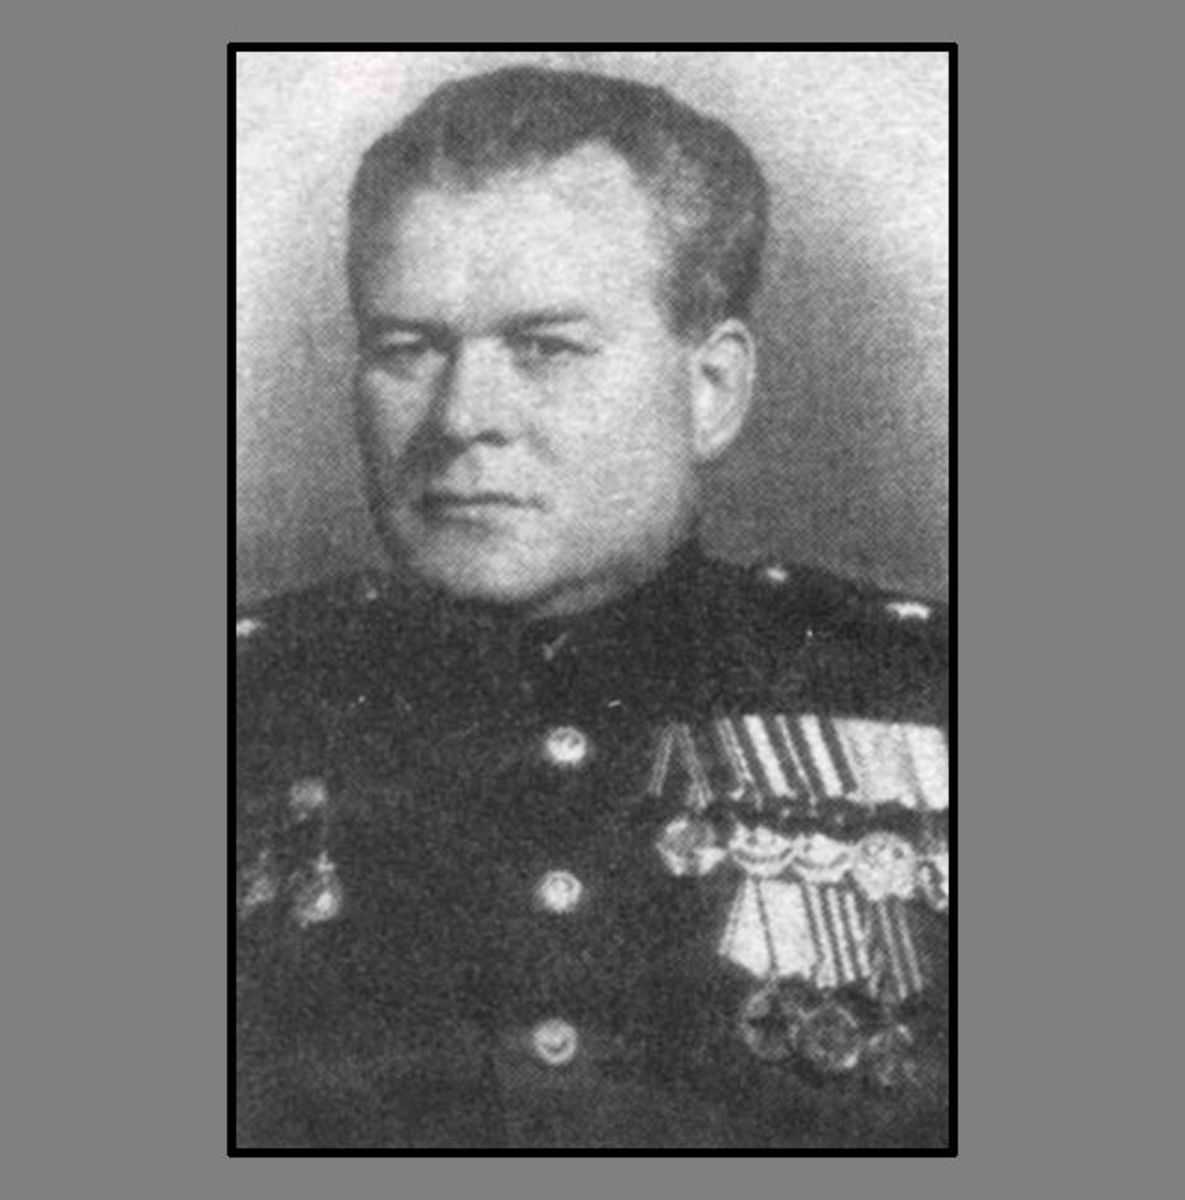 World War Two: Major-General Vasili Blokhin. Stalin's chief executioner. 1926.